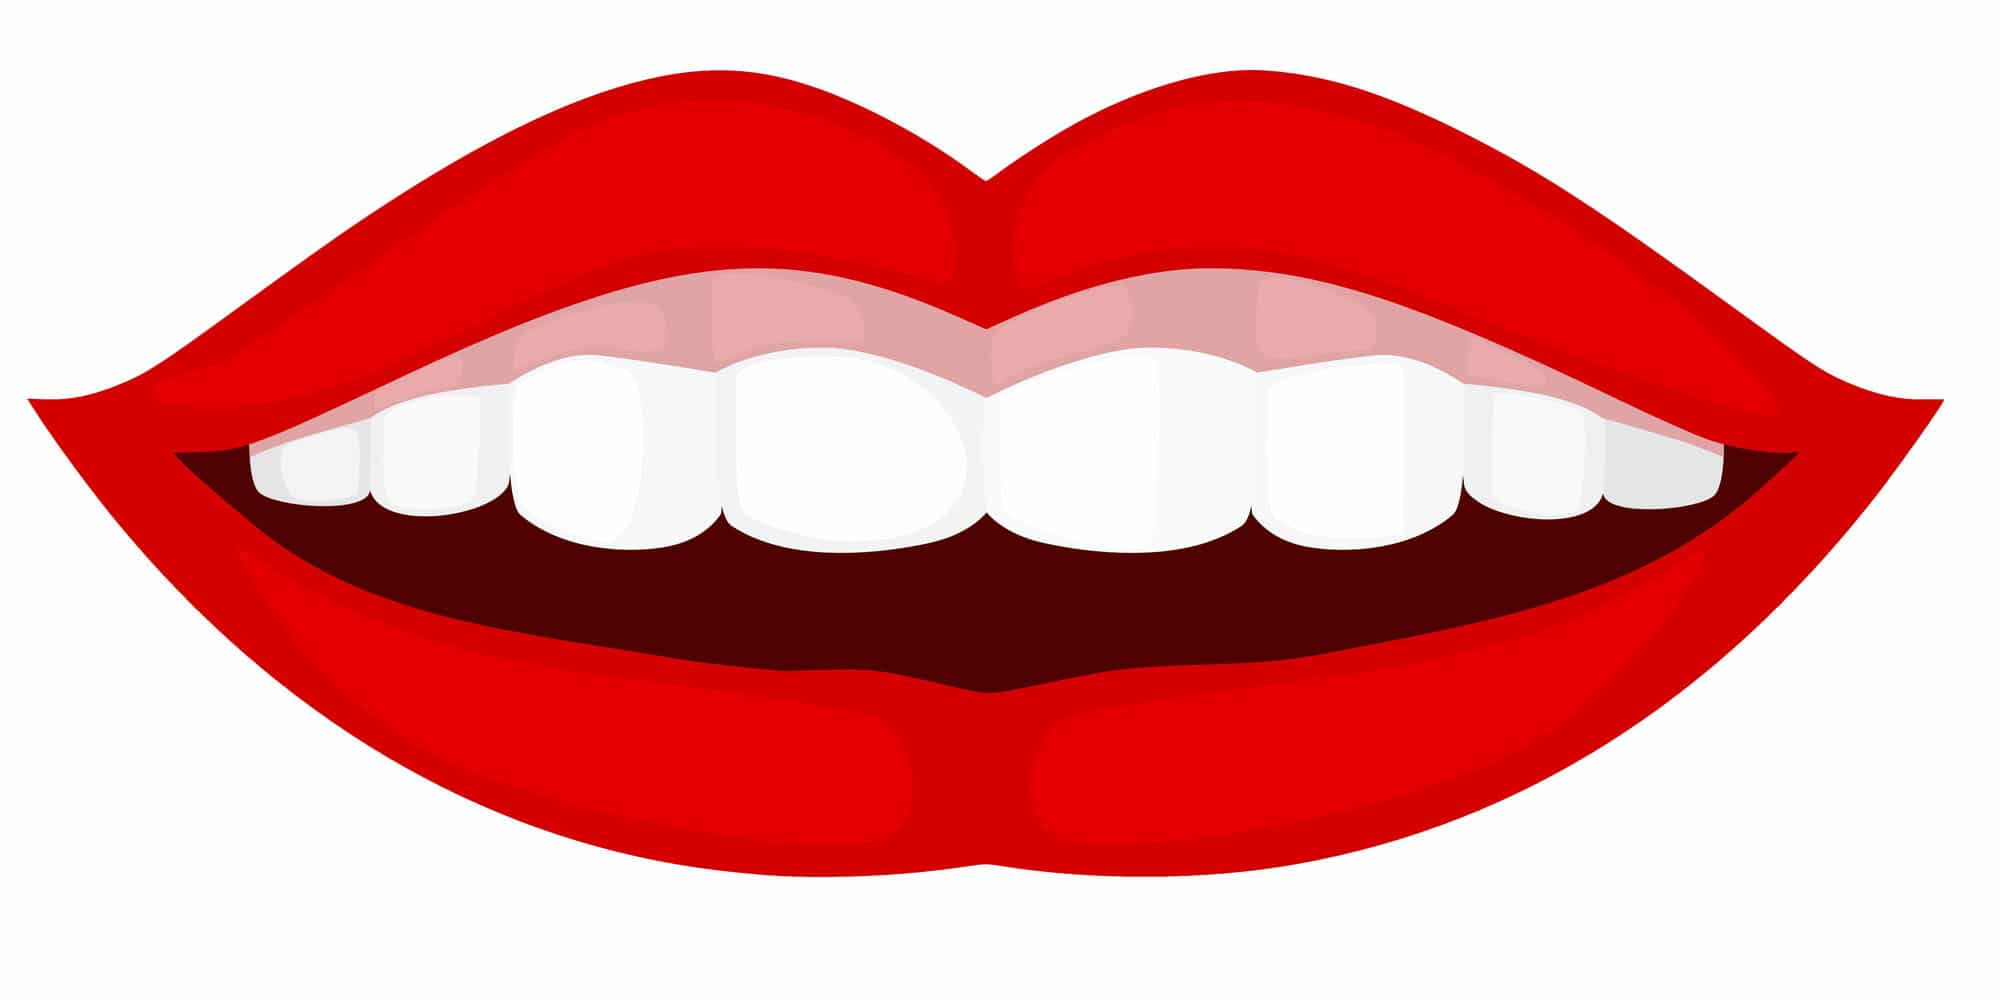 gingival hyperplasia and gummy smile overgrowth blog featured image